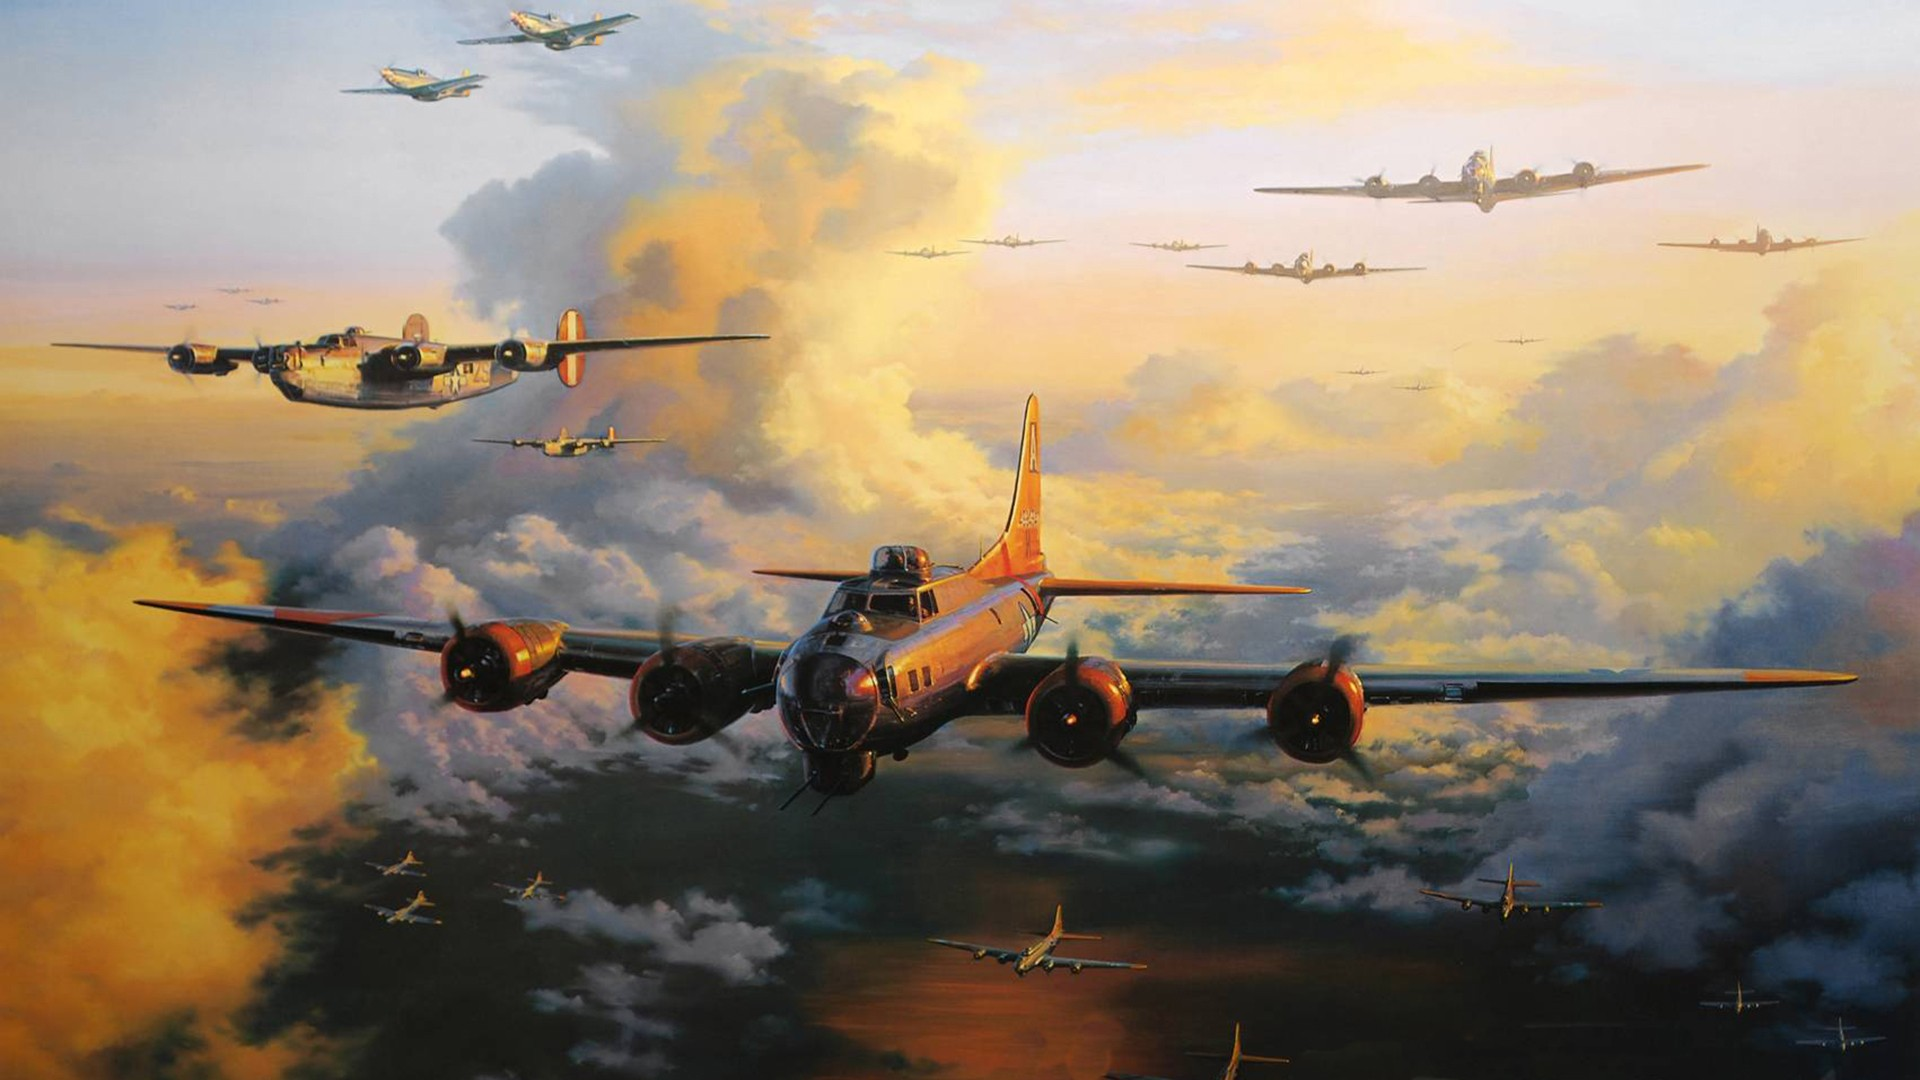 Boeing B 17 Flying Fortress HD Wallpaper Background Image 1920x1080